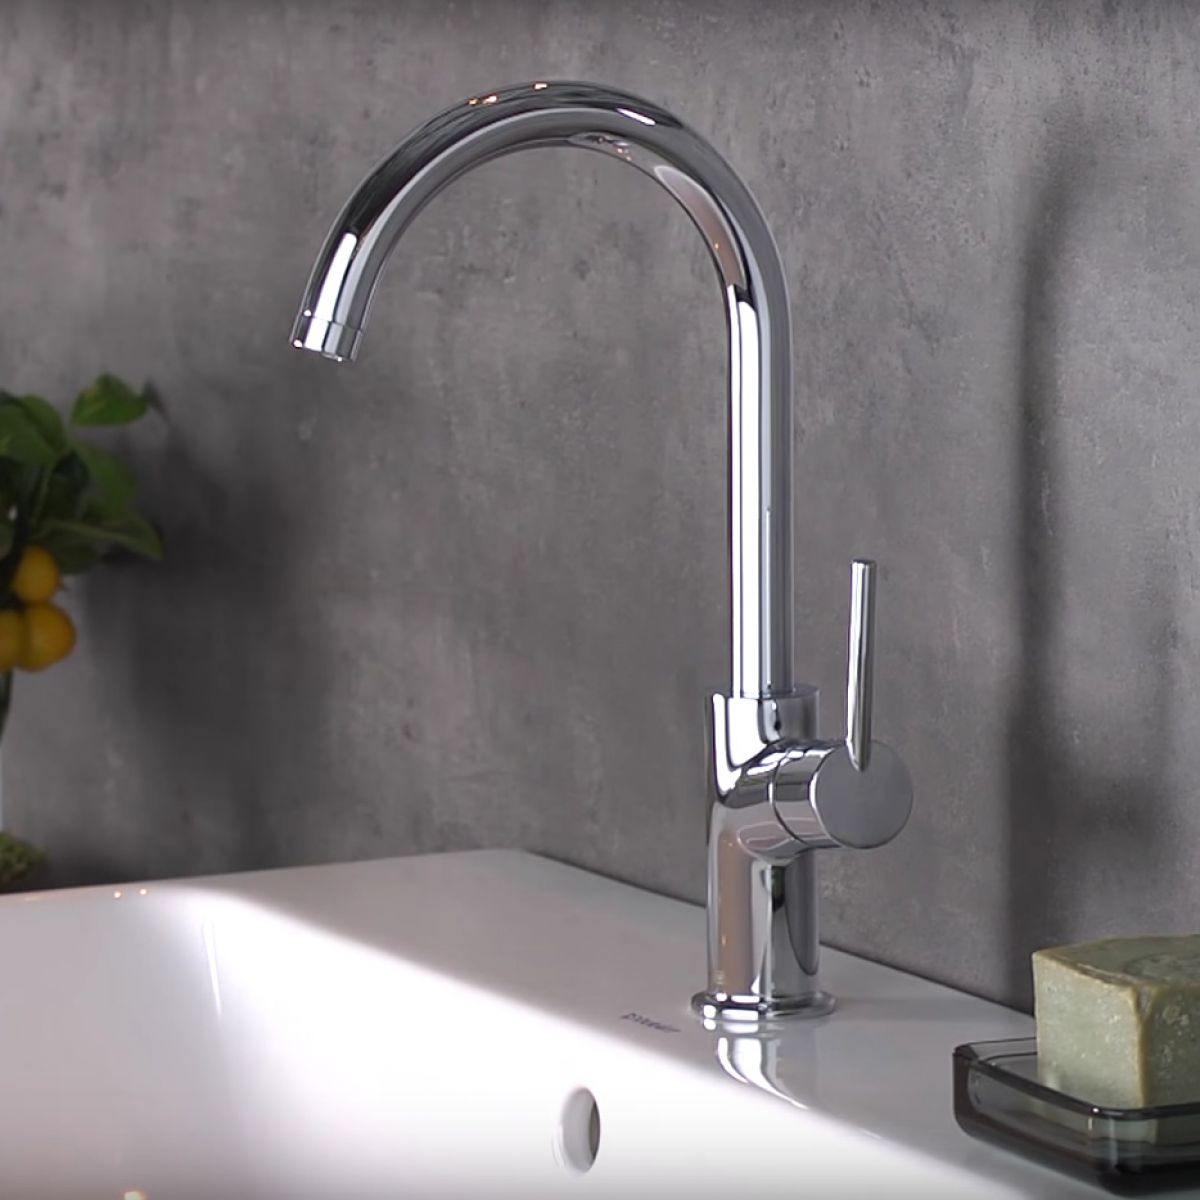 Hansgrohe Talis 210 Single Lever Basin Mixer Tap : UK Bathrooms